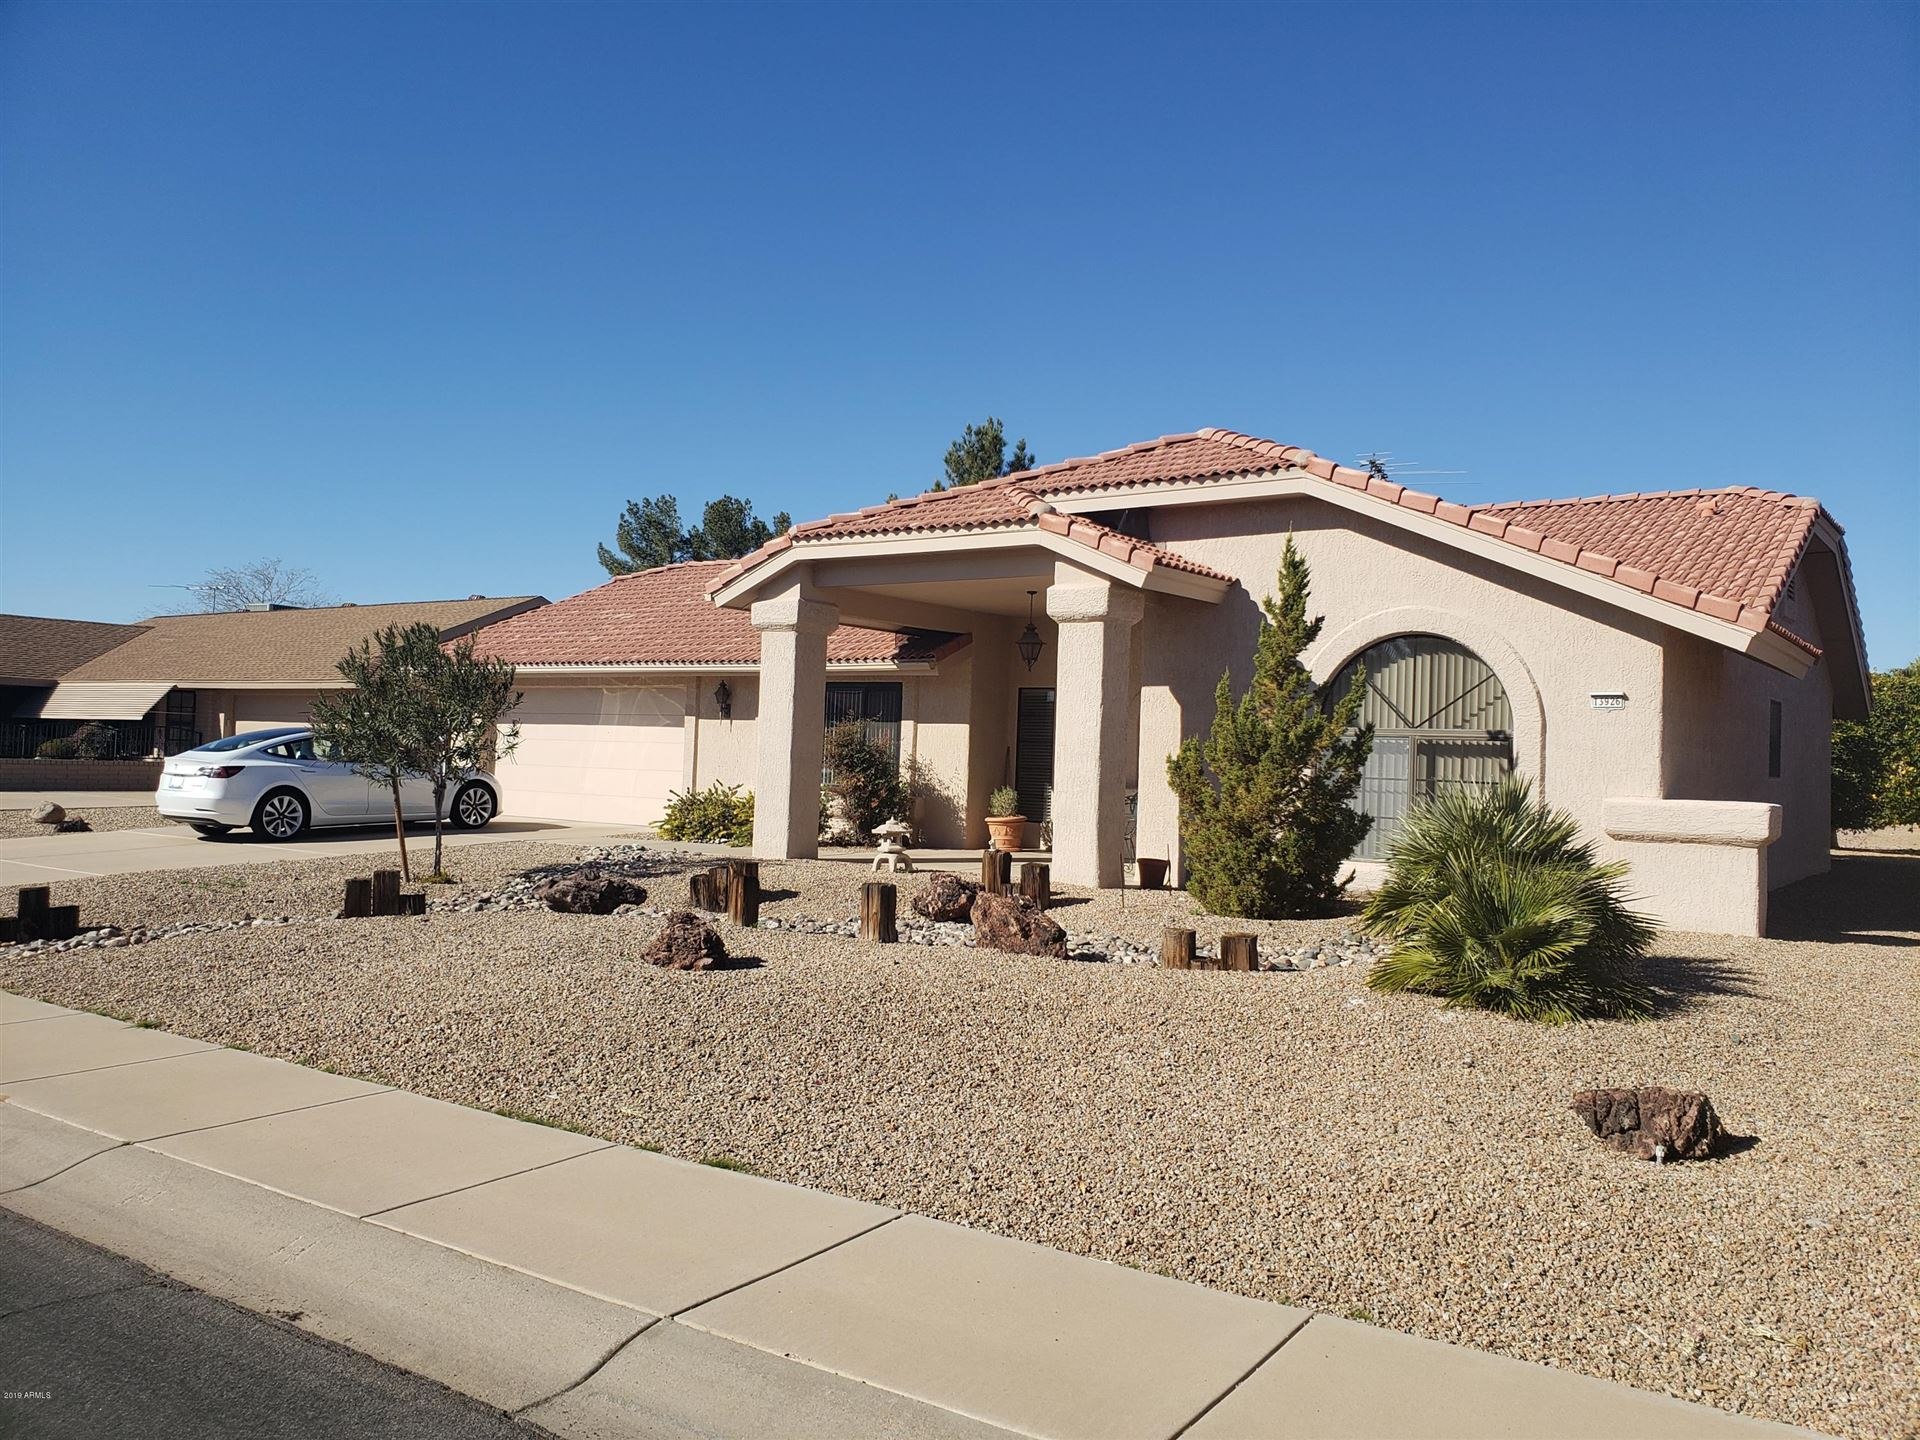 Photo of 13926 W TERRA VISTA Drive, Sun City West, AZ 85375 (MLS # 6200311)